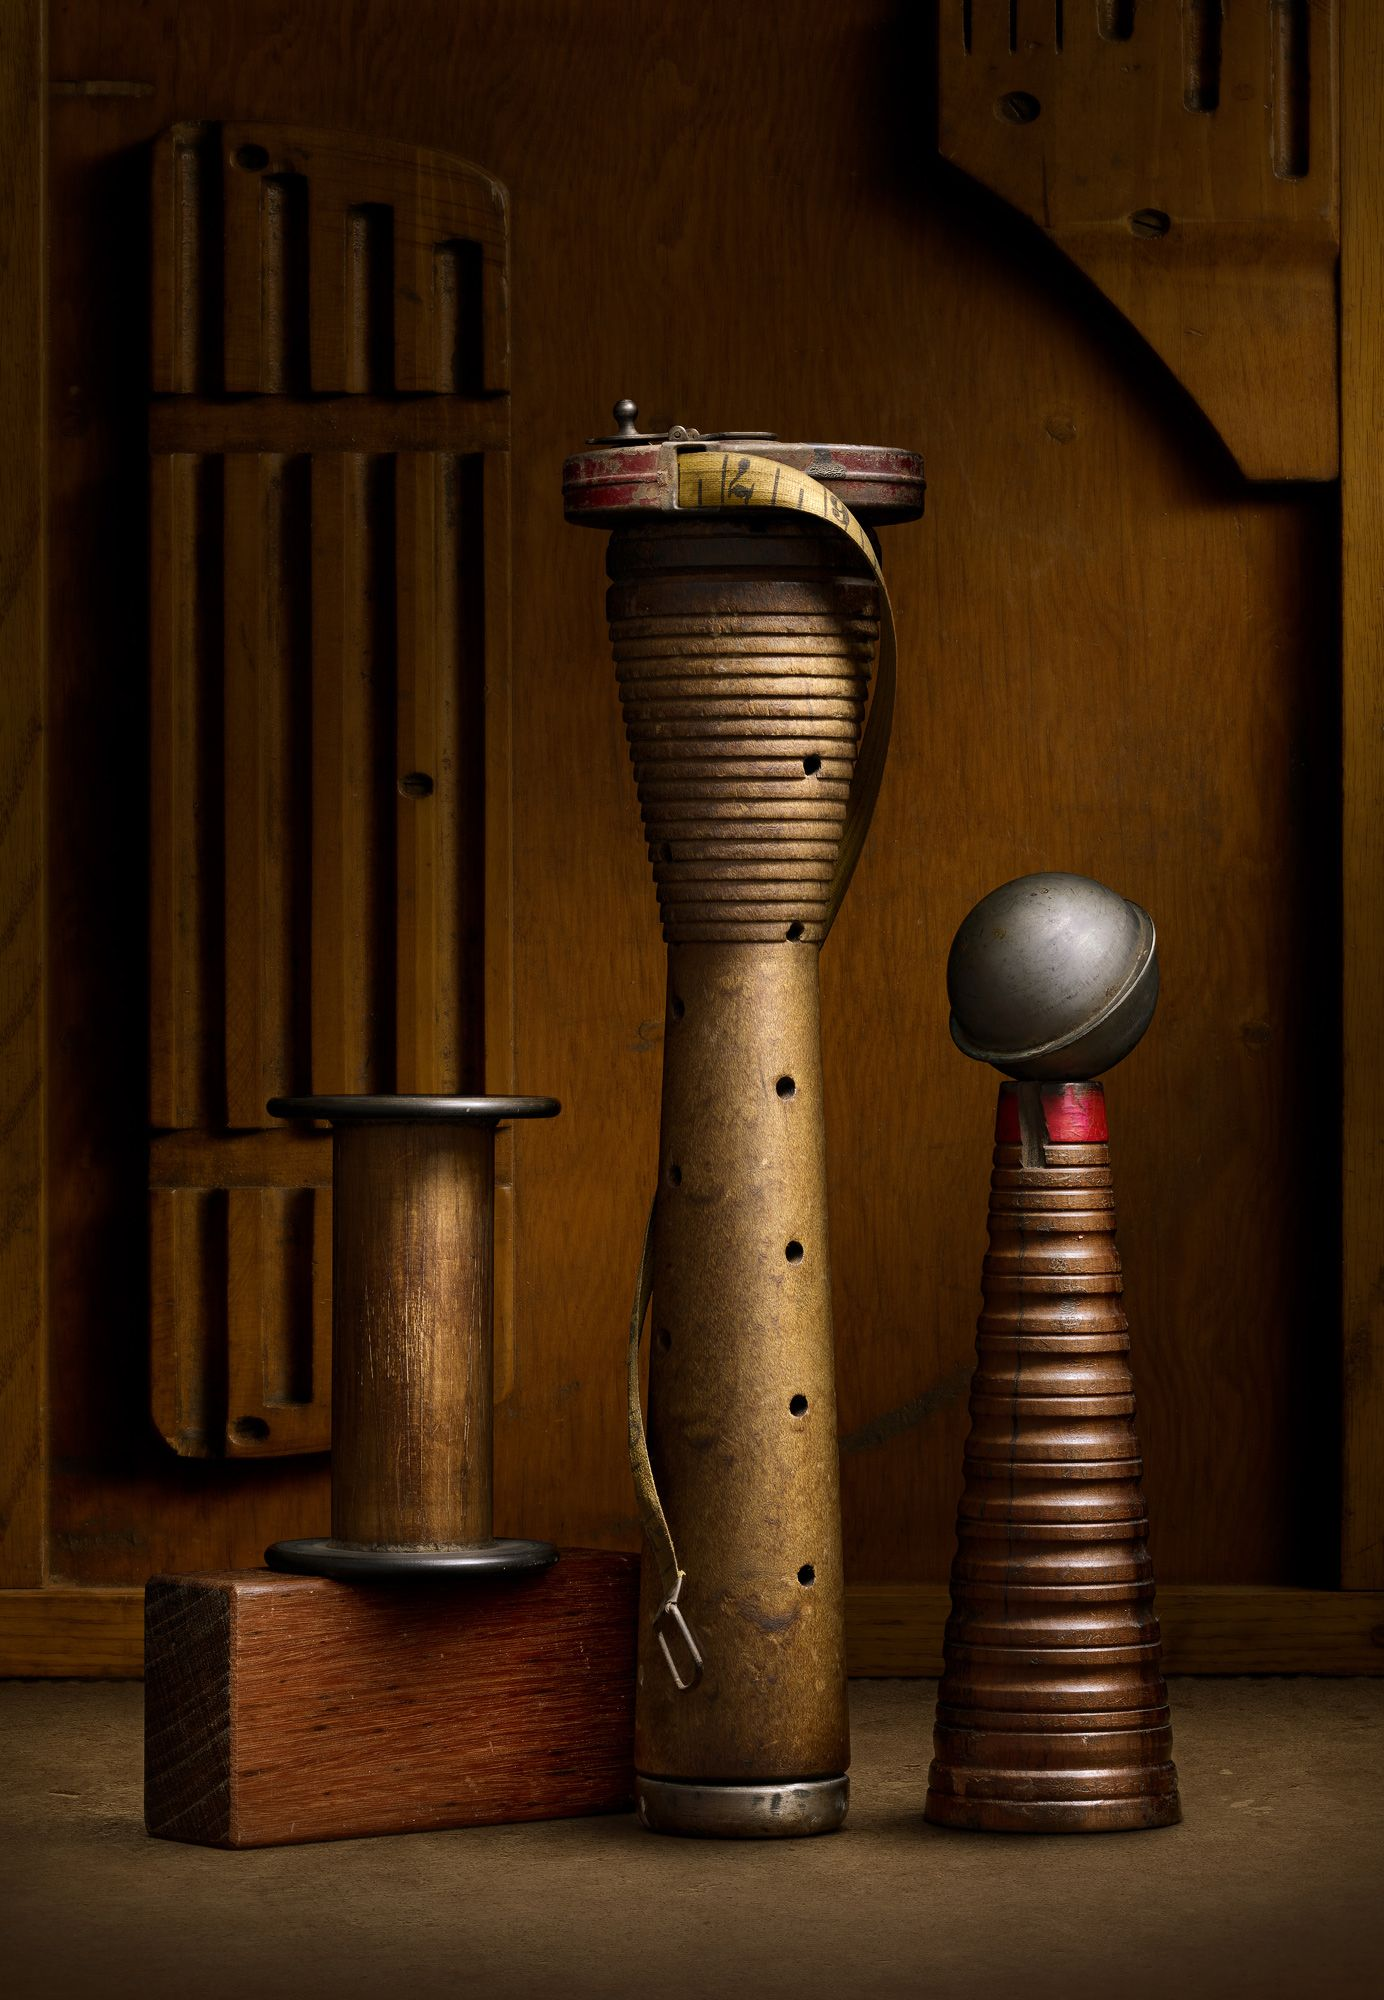 Spools by Harold Ross